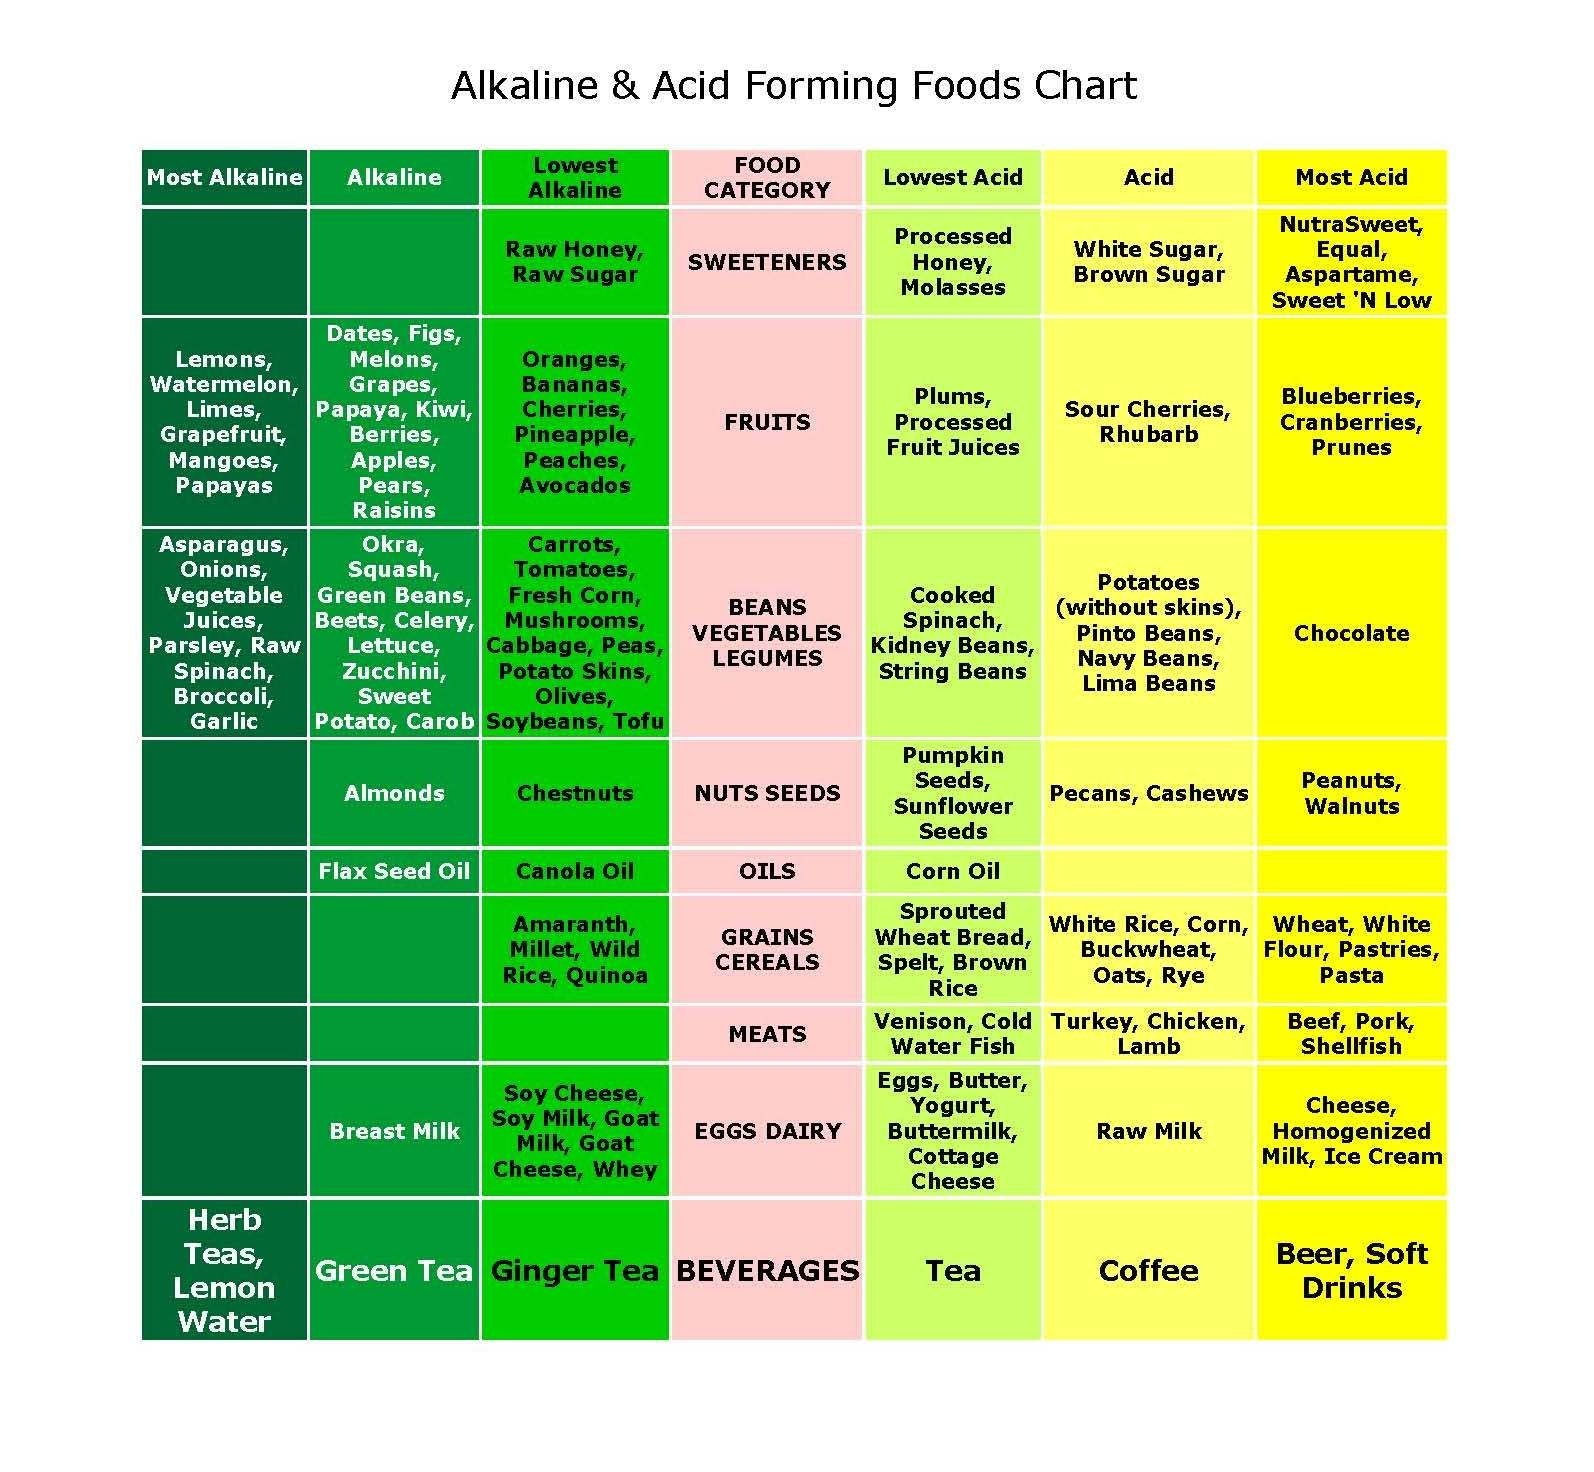 Best alkaline foods chart chronic acidosis a precursor to best alkaline foods chart chronic acidosis a precursor to cancer the health coach nvjuhfo Choice Image